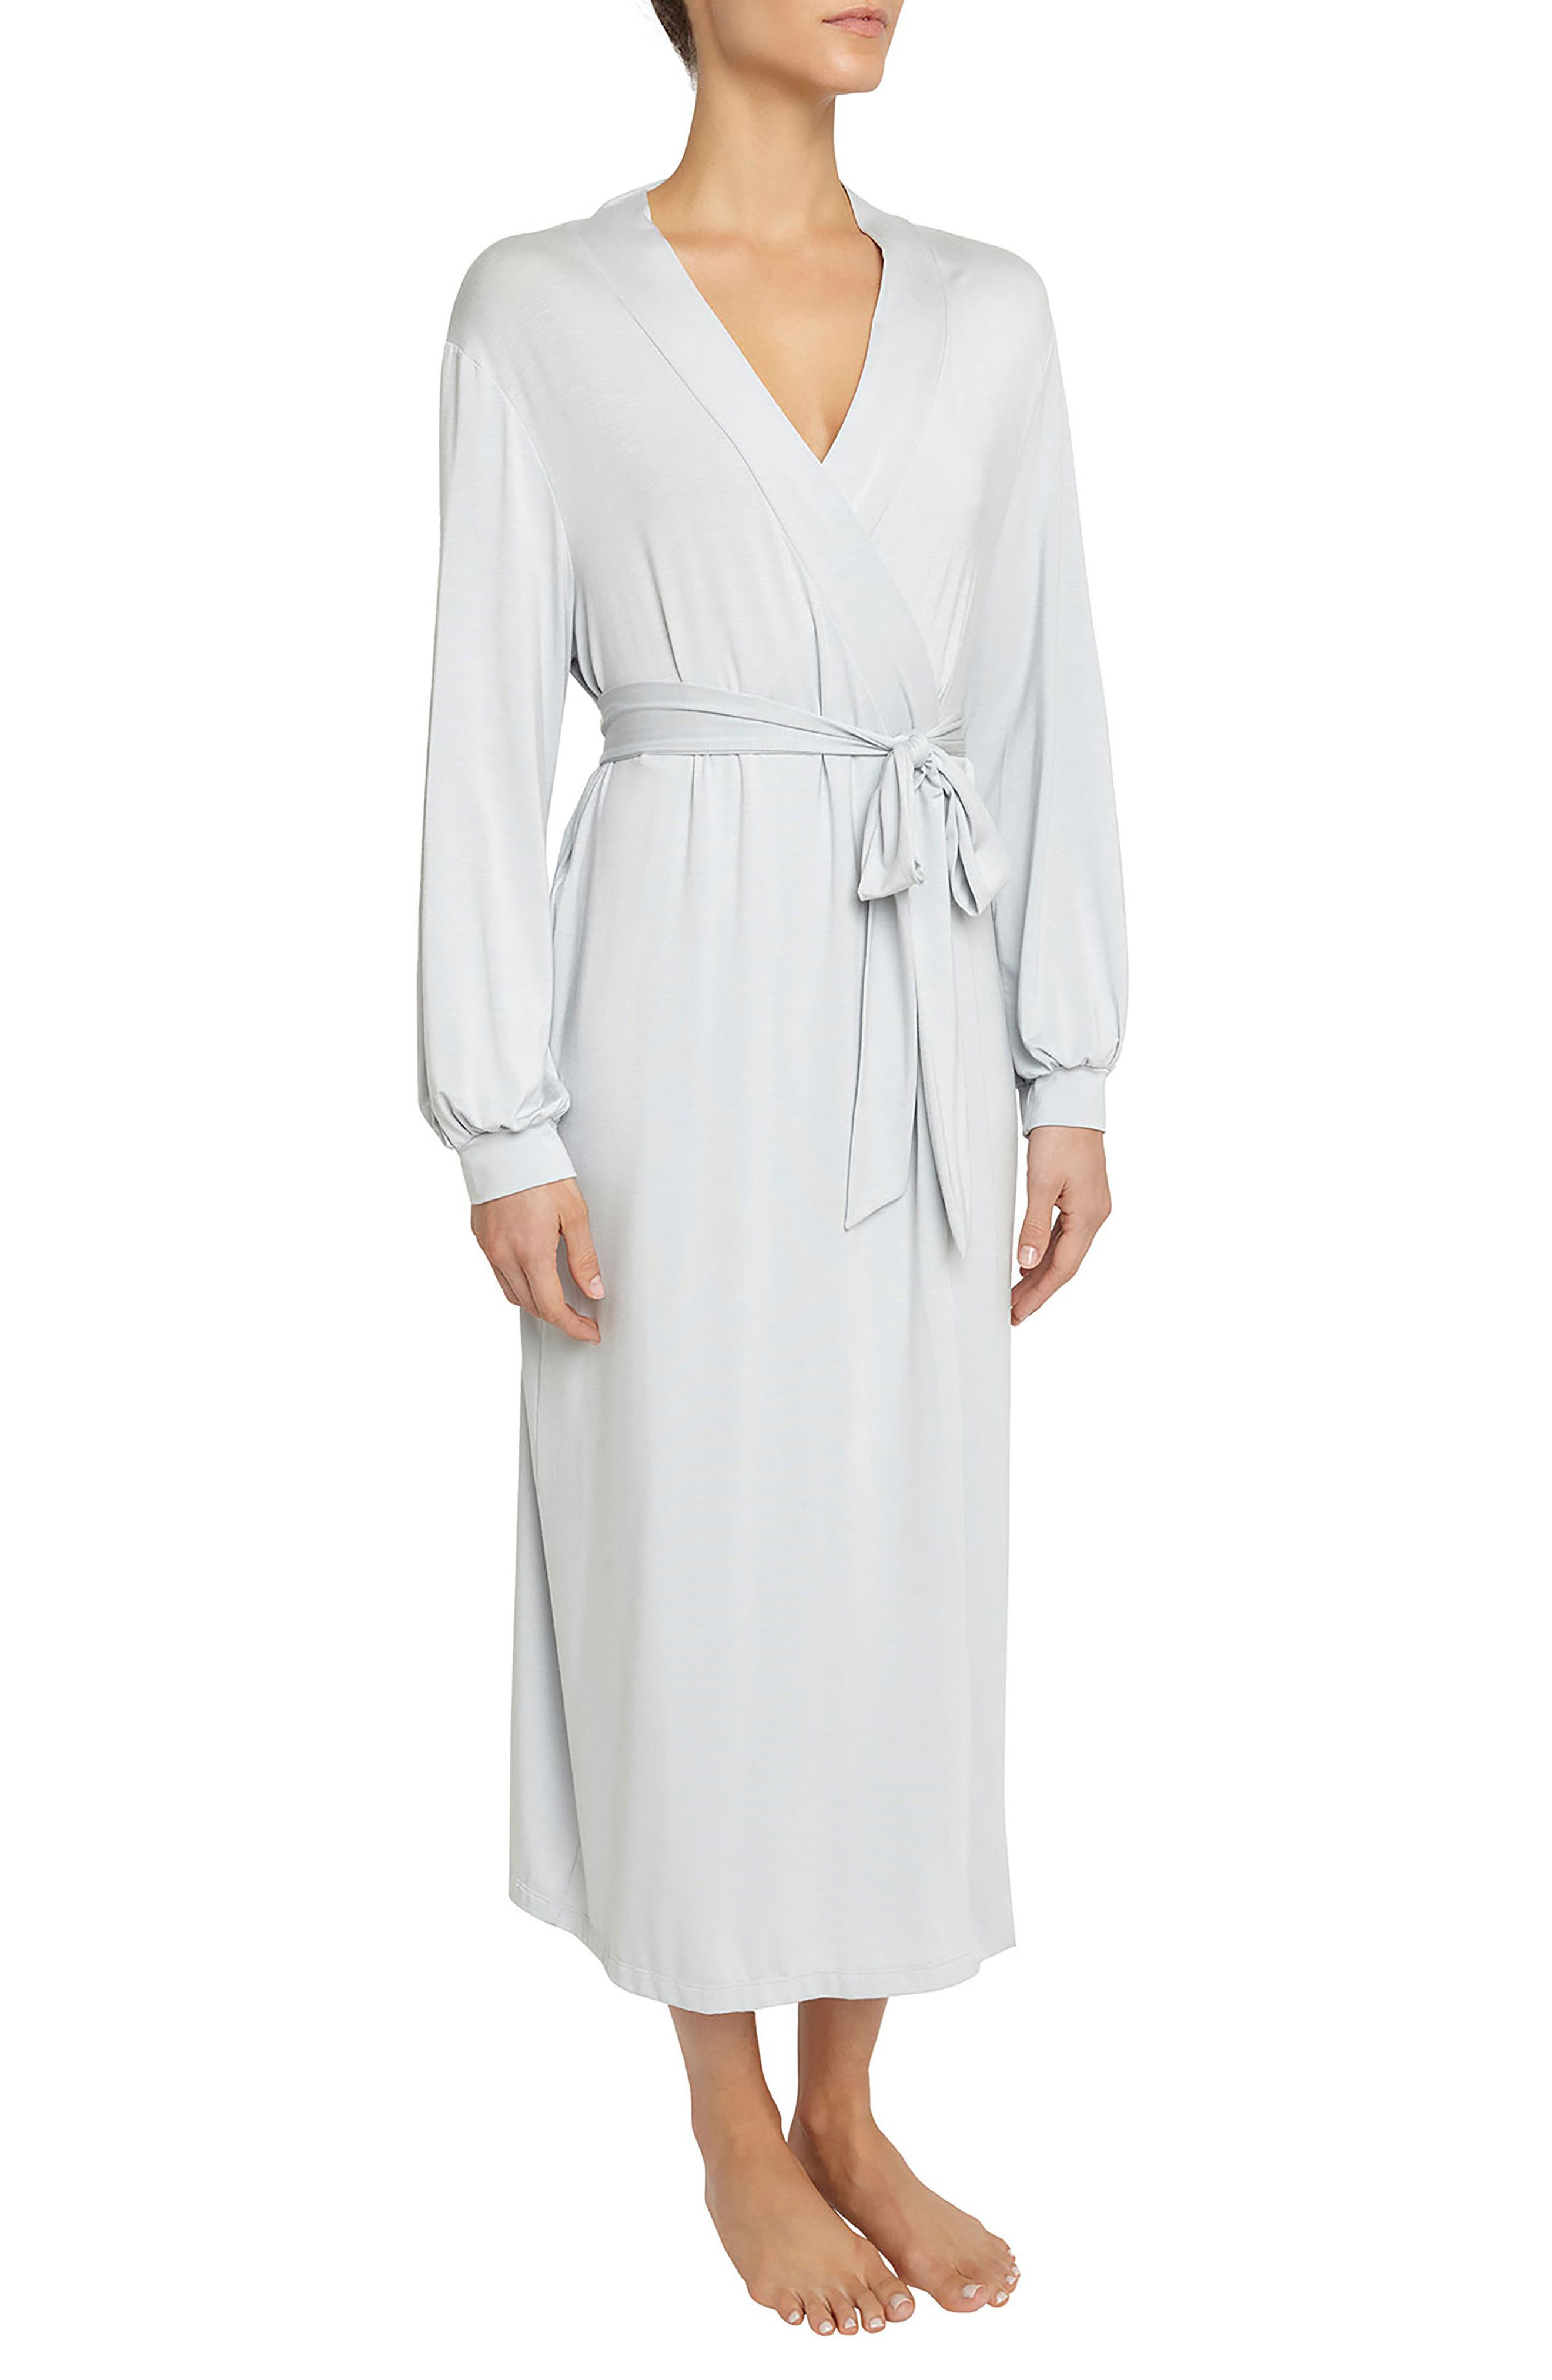 Elvia Robe,                             Main thumbnail 1, color,                             458